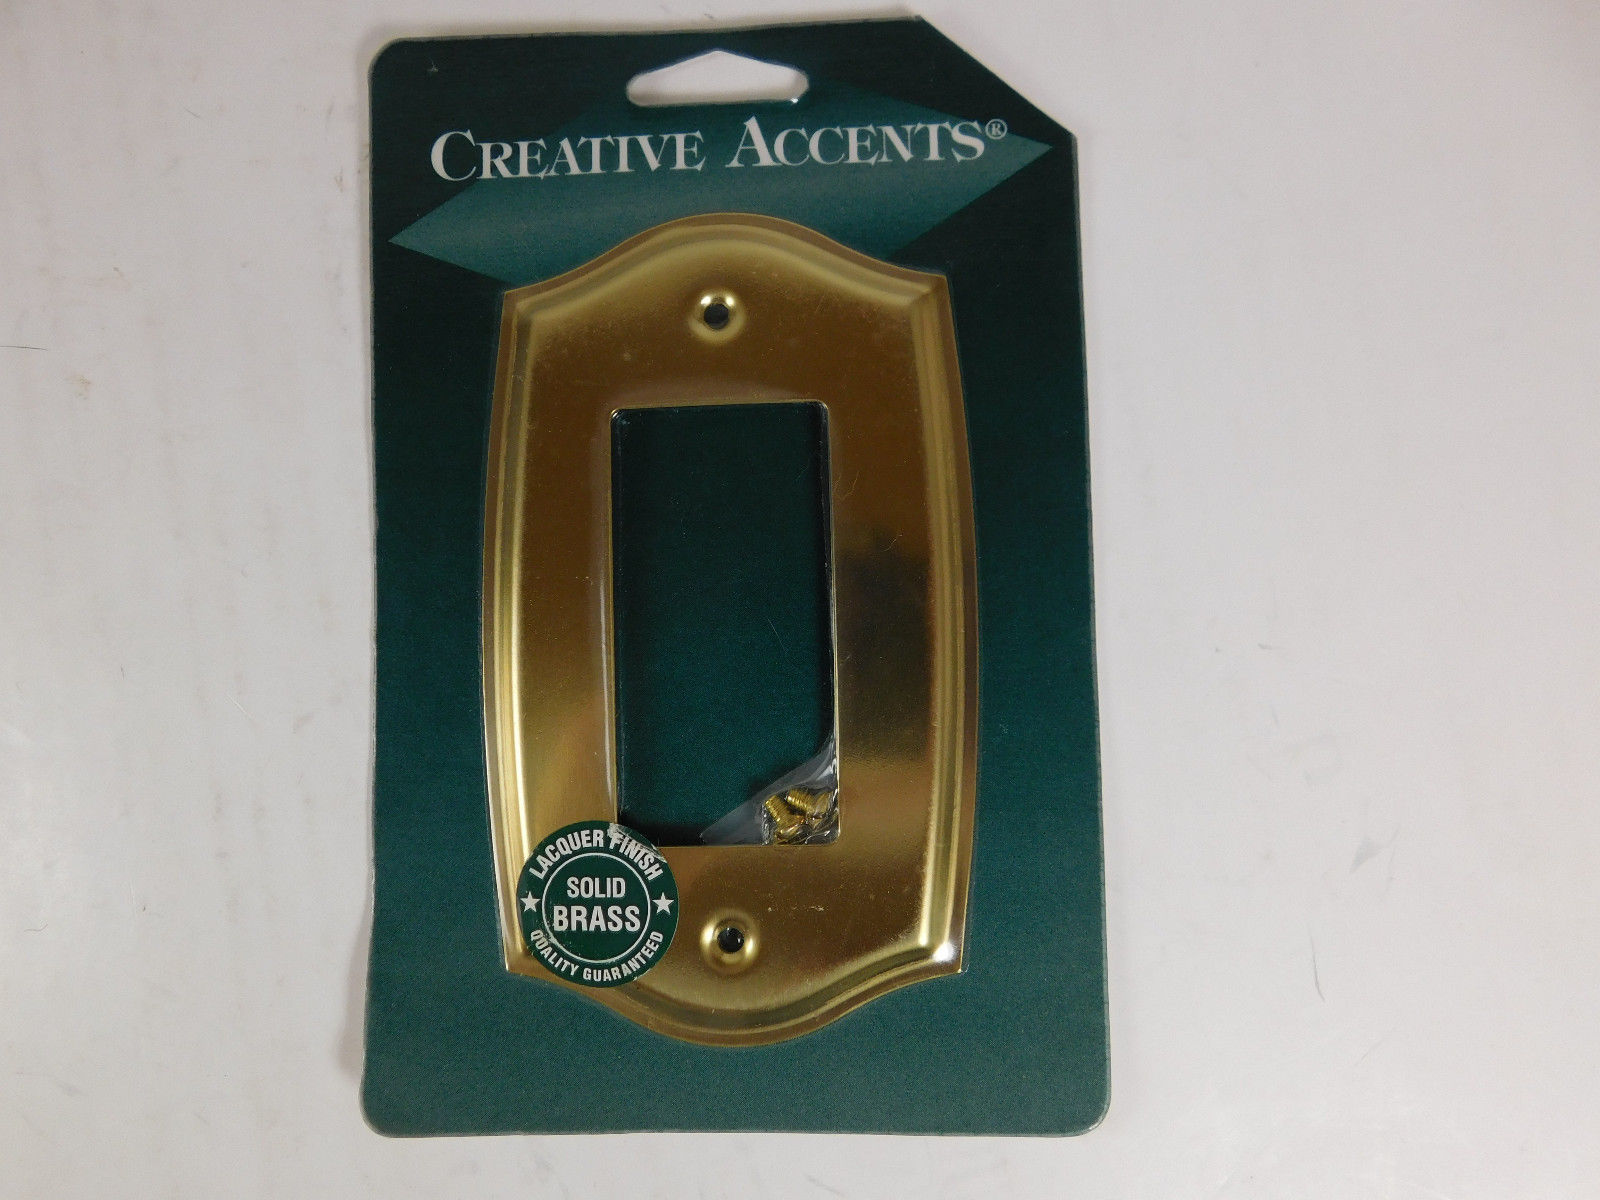 Primary image for Creative Accents Brass rocker Wall Switch Plate Cover new sealed rounded edge